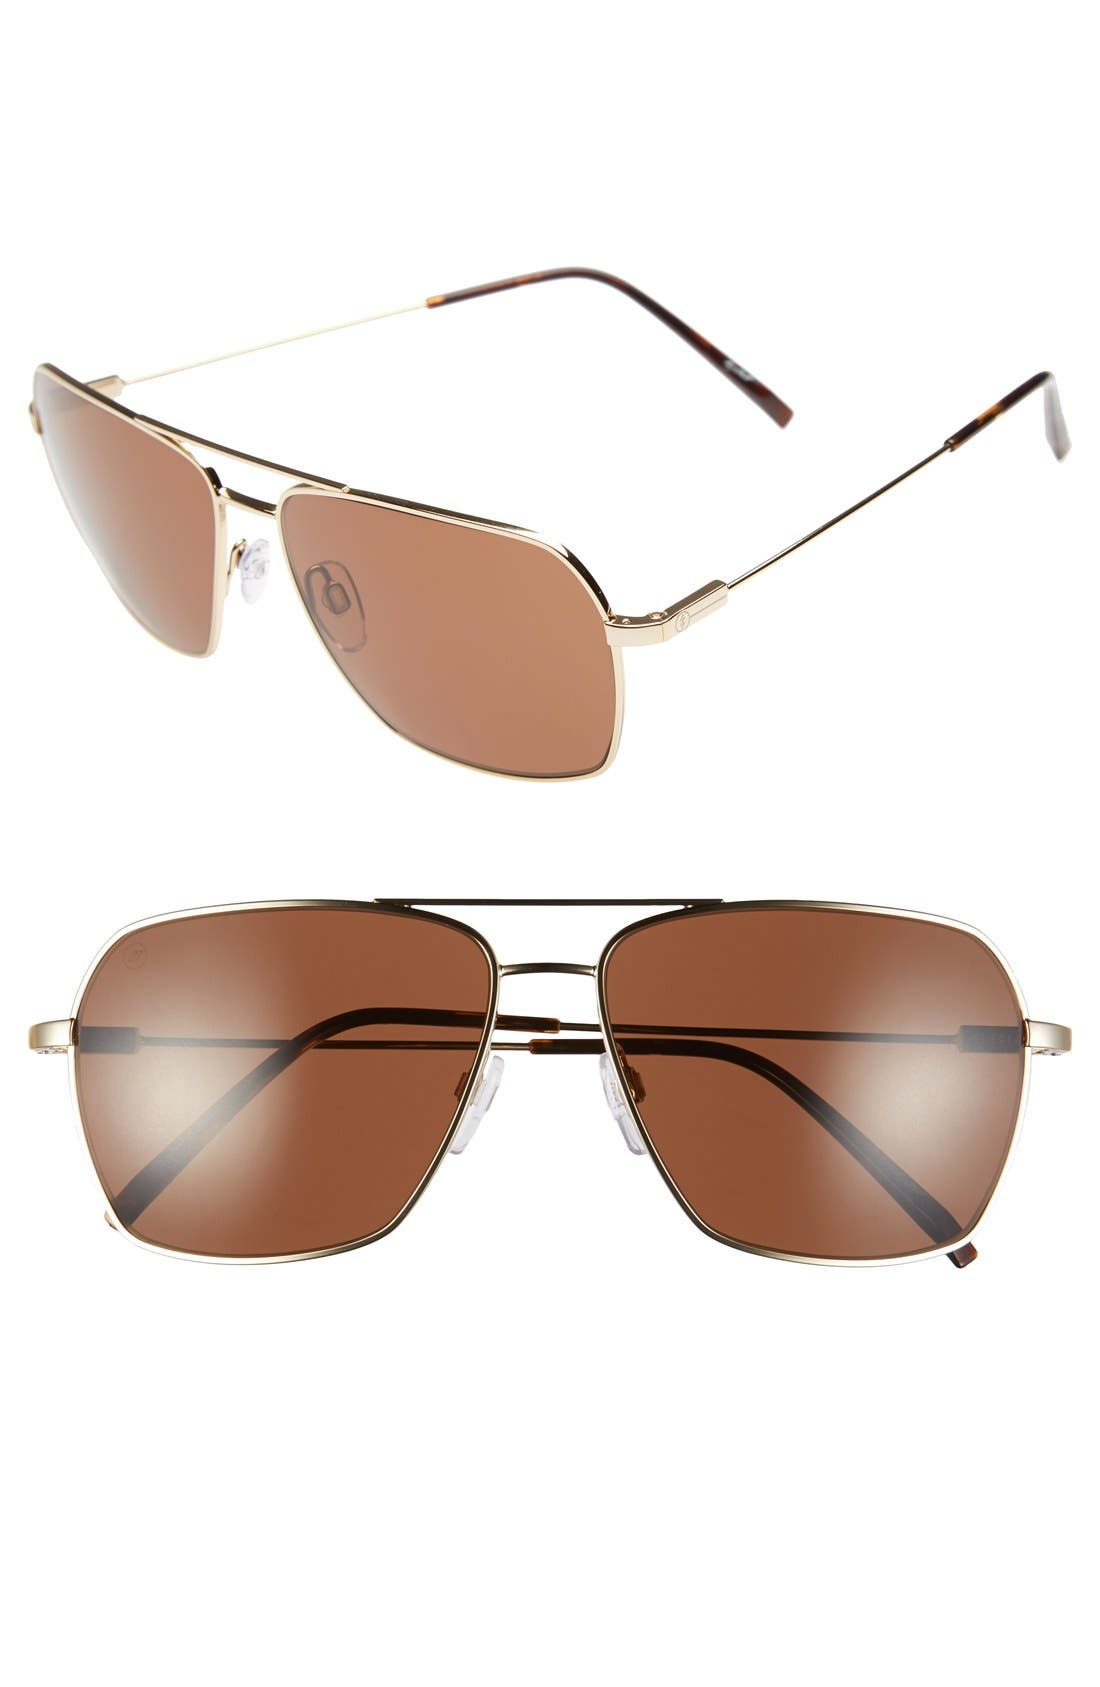 'AV2' 59mm Sunglasses,                         Main,                         color, GOLD/ BRONZE